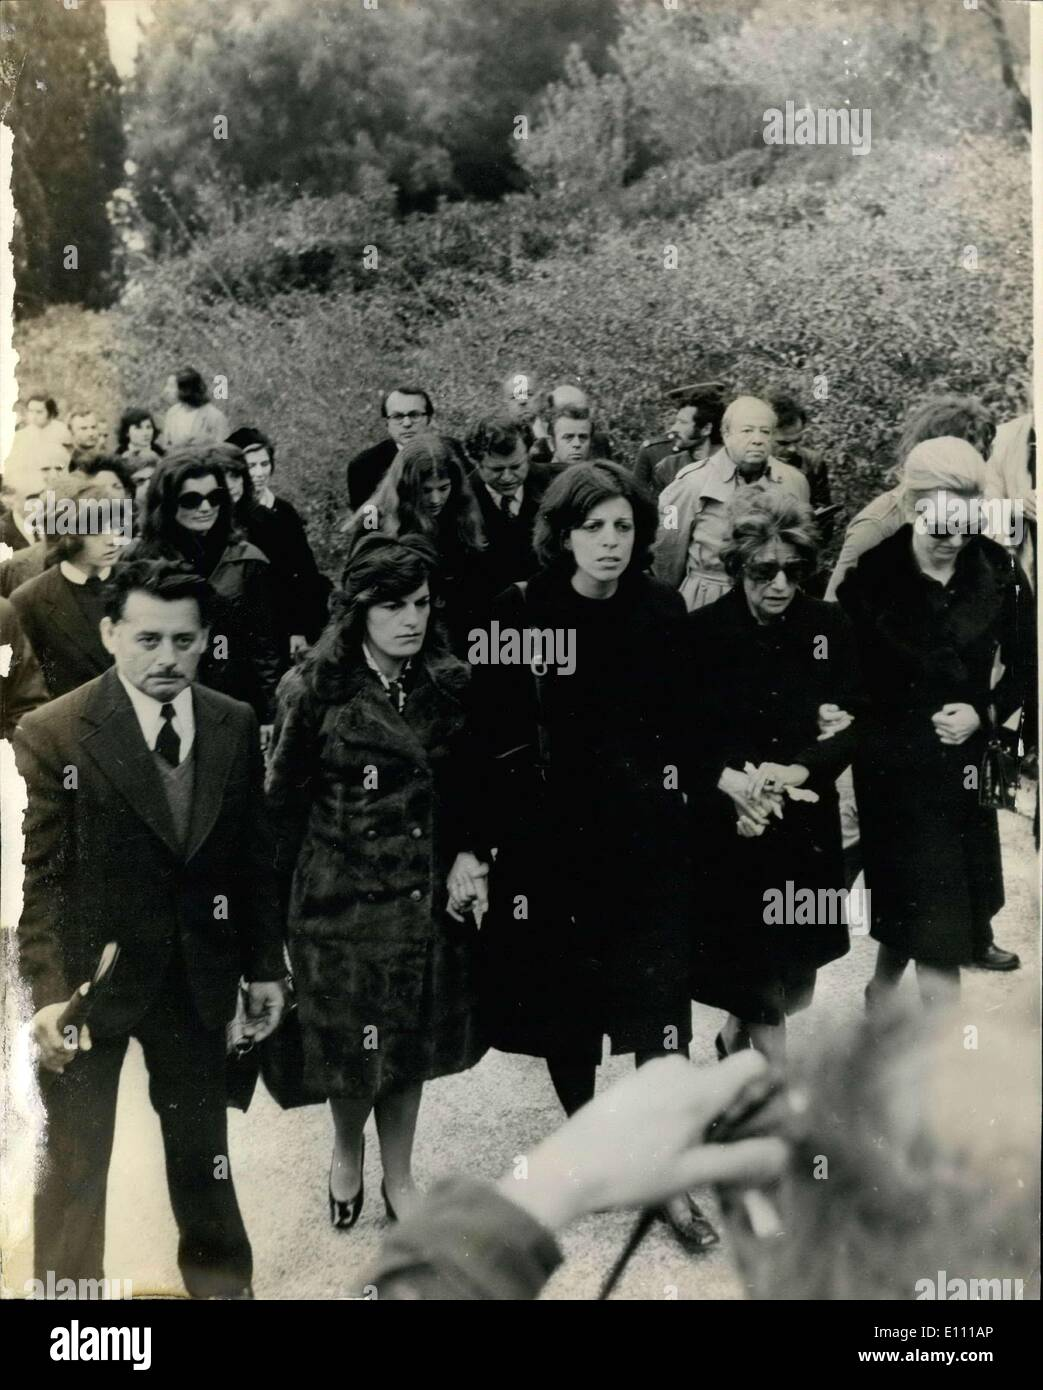 Mar  21, 1975 - Funeral of Aristotle Onassis  The Funeral took place